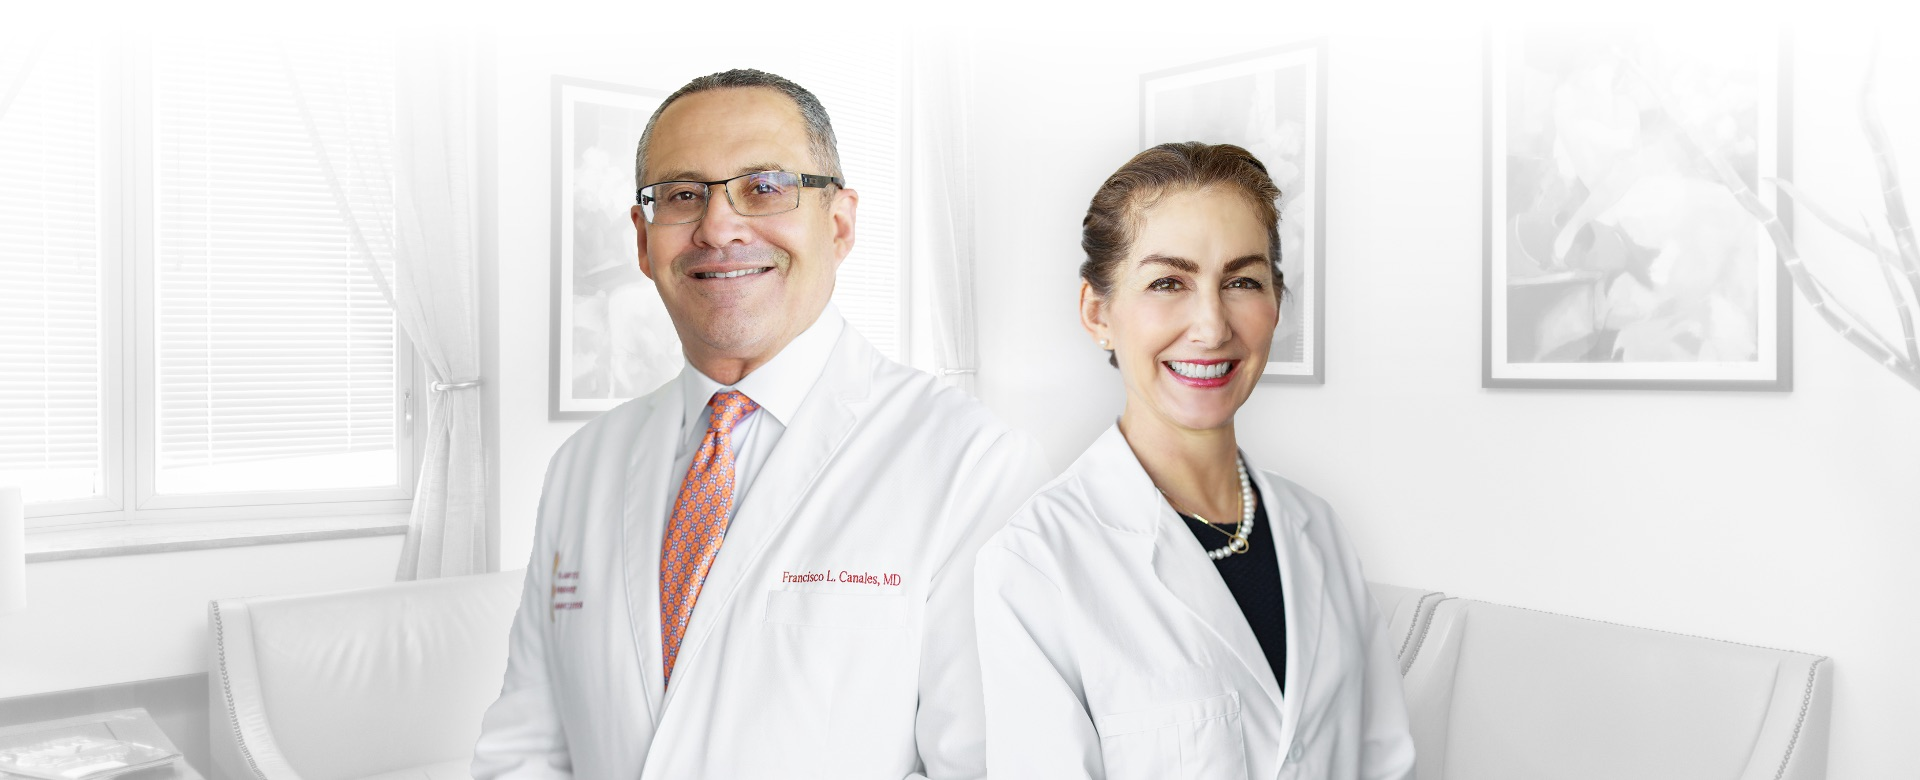 Dr. Canales and Dr. Furnas in white coats